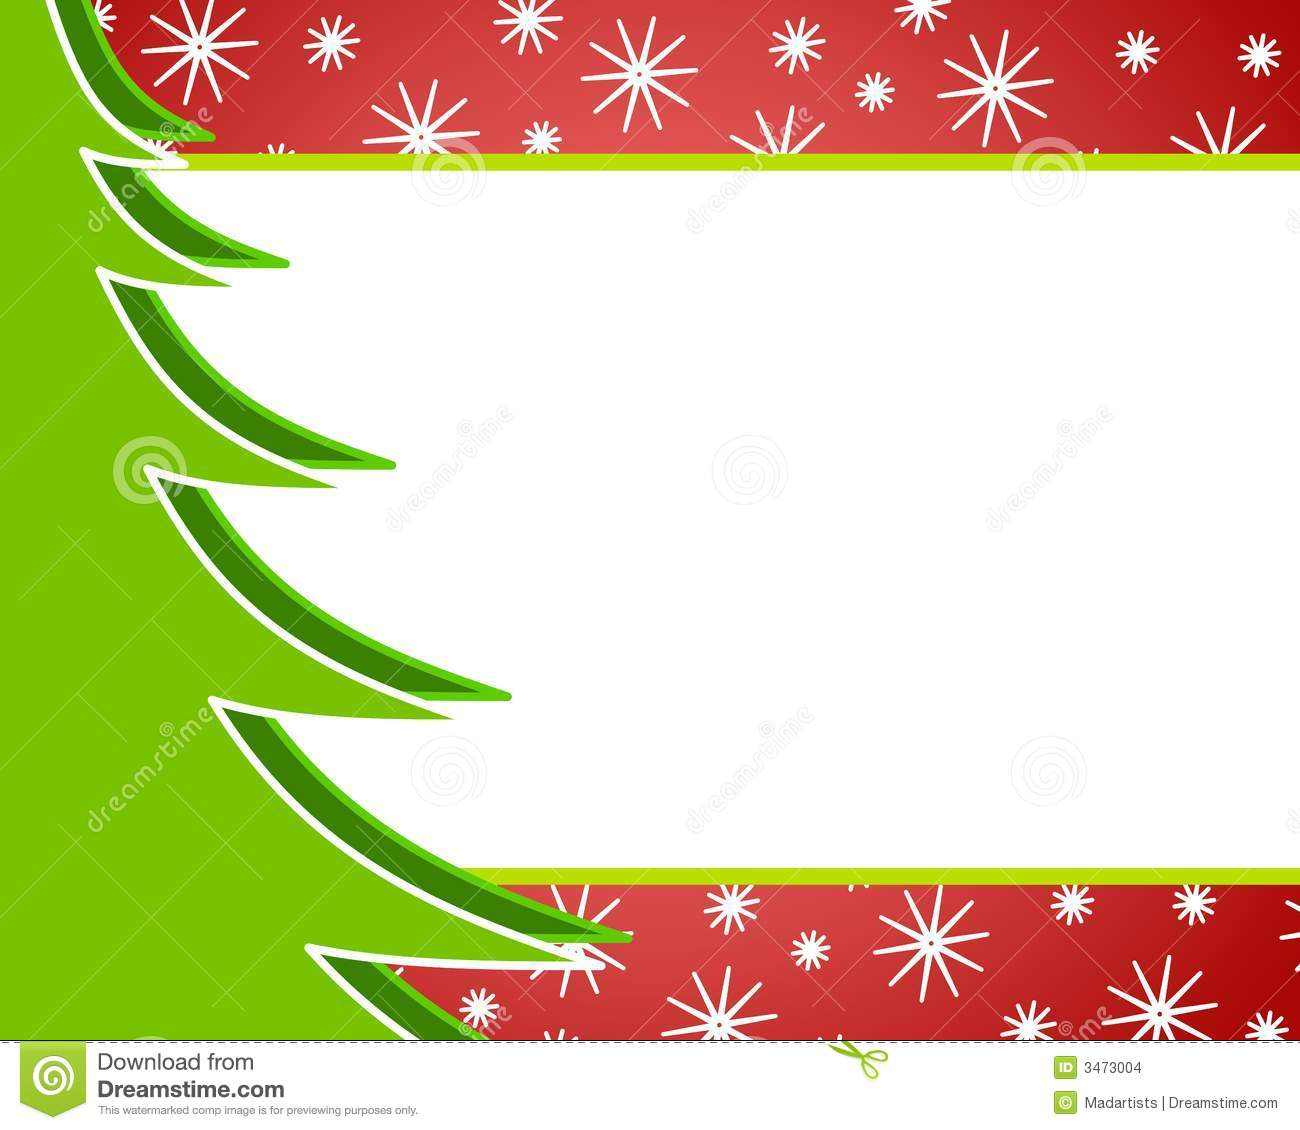 christmas tree background 2 stock illustration illustration of rh dreamstime com vintage christmas background clipart christmas tree background clipart